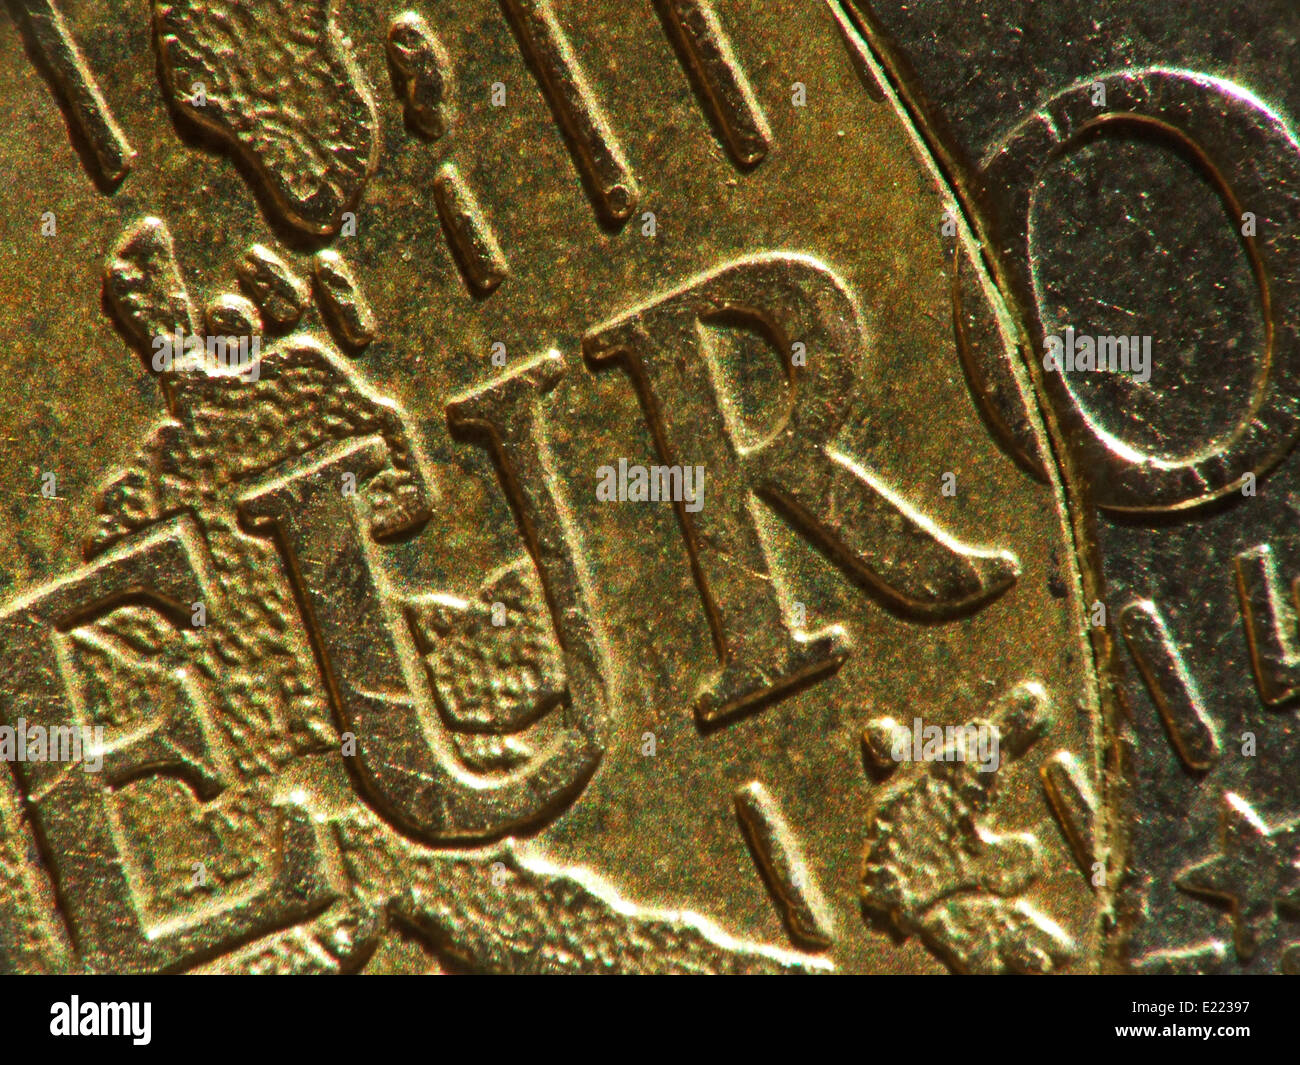 euro coin - Stock Image